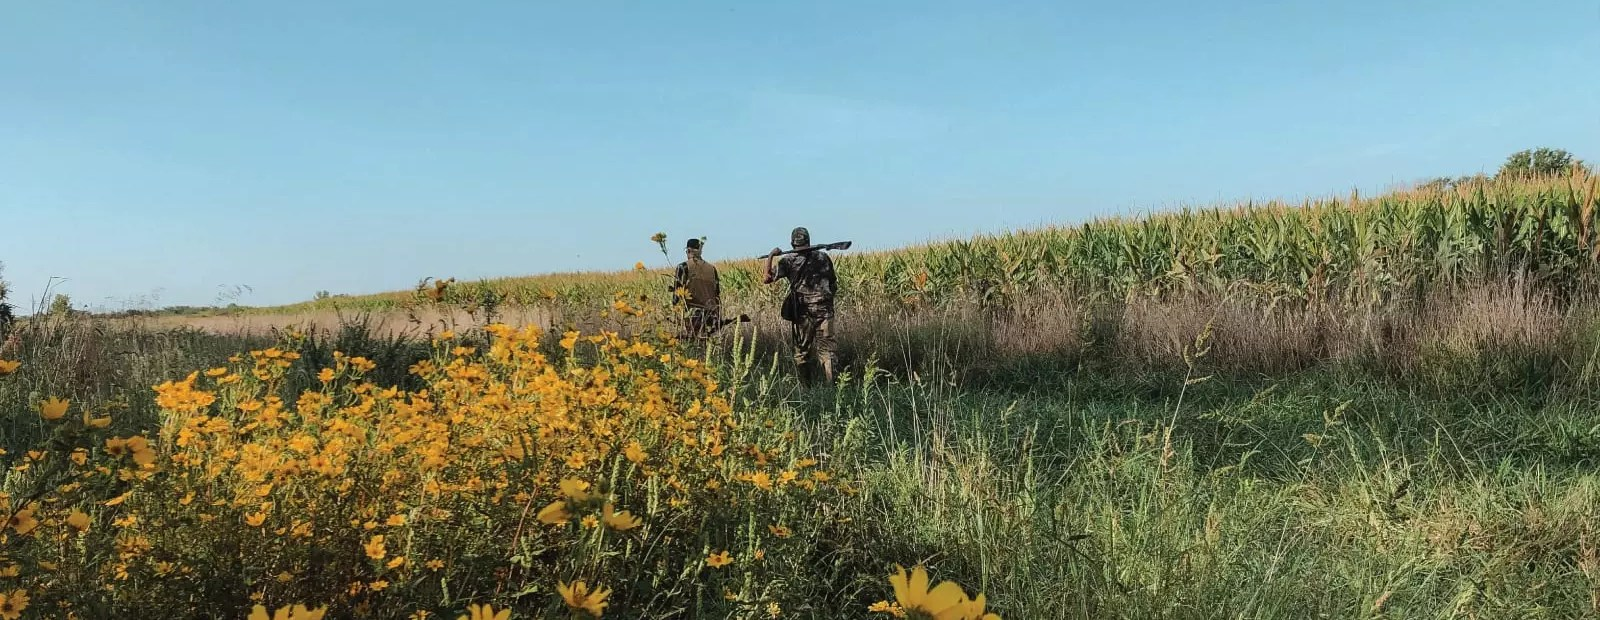 Dove hunters walking into a field.